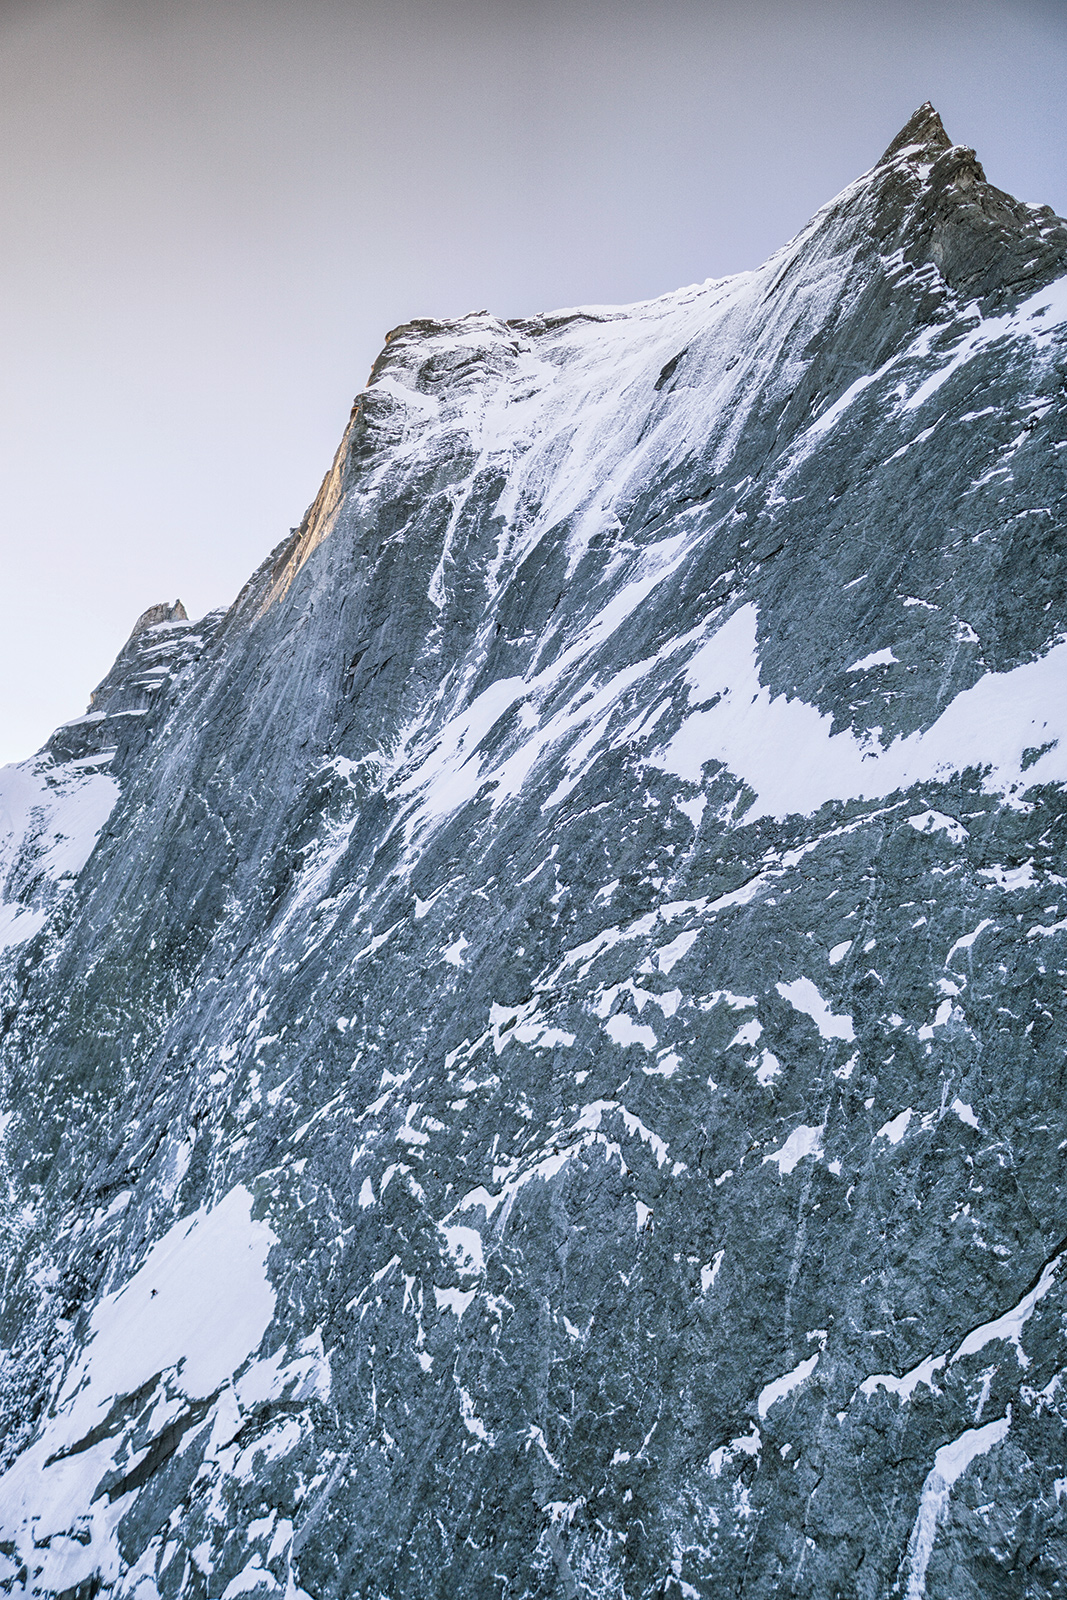 Ballard, on the snowfield in the lower left of the photo, races up the North Face of the Piz Badile. He climbed the 2,750-foot Cassin Route in one and a half days, encountering sections as difficult as M7. Ballard said the Piz Badile was the hardest of the classic North Faces. Photo: Ruggero Arena.